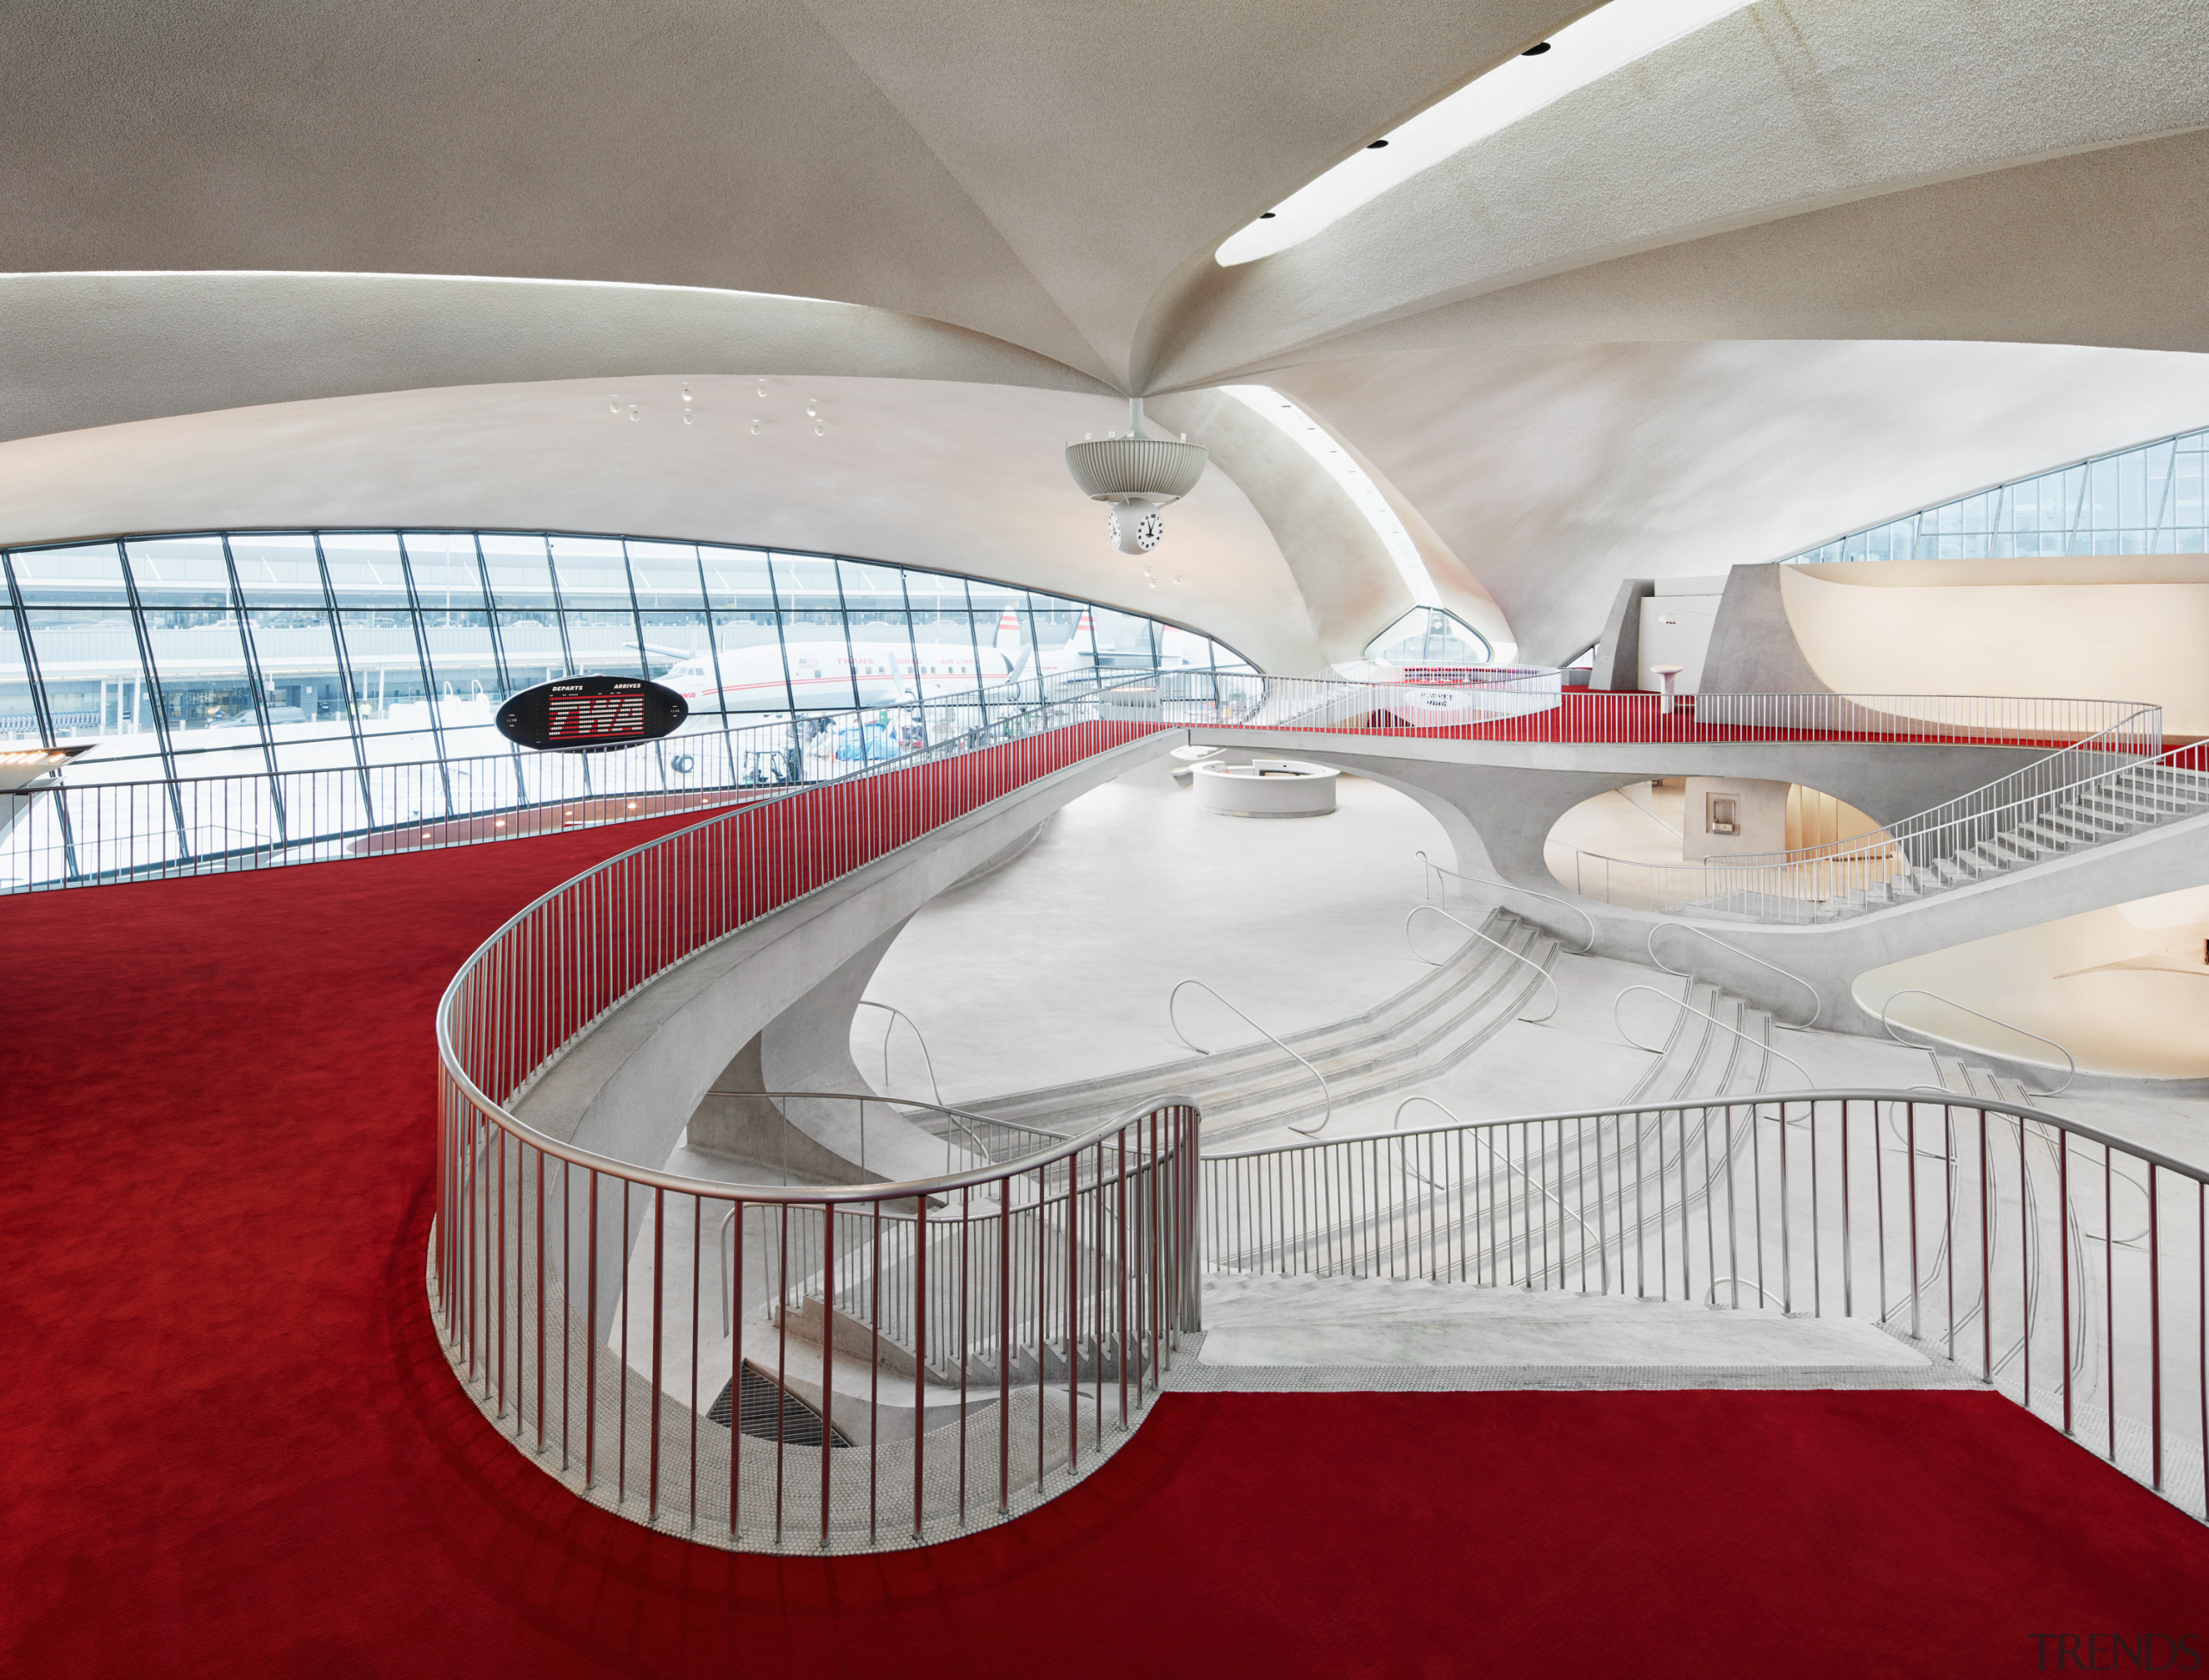 :Looking down on the terminal from the London architecture, London Club, TWA Hotel, Lubrano Ciavarra Architects